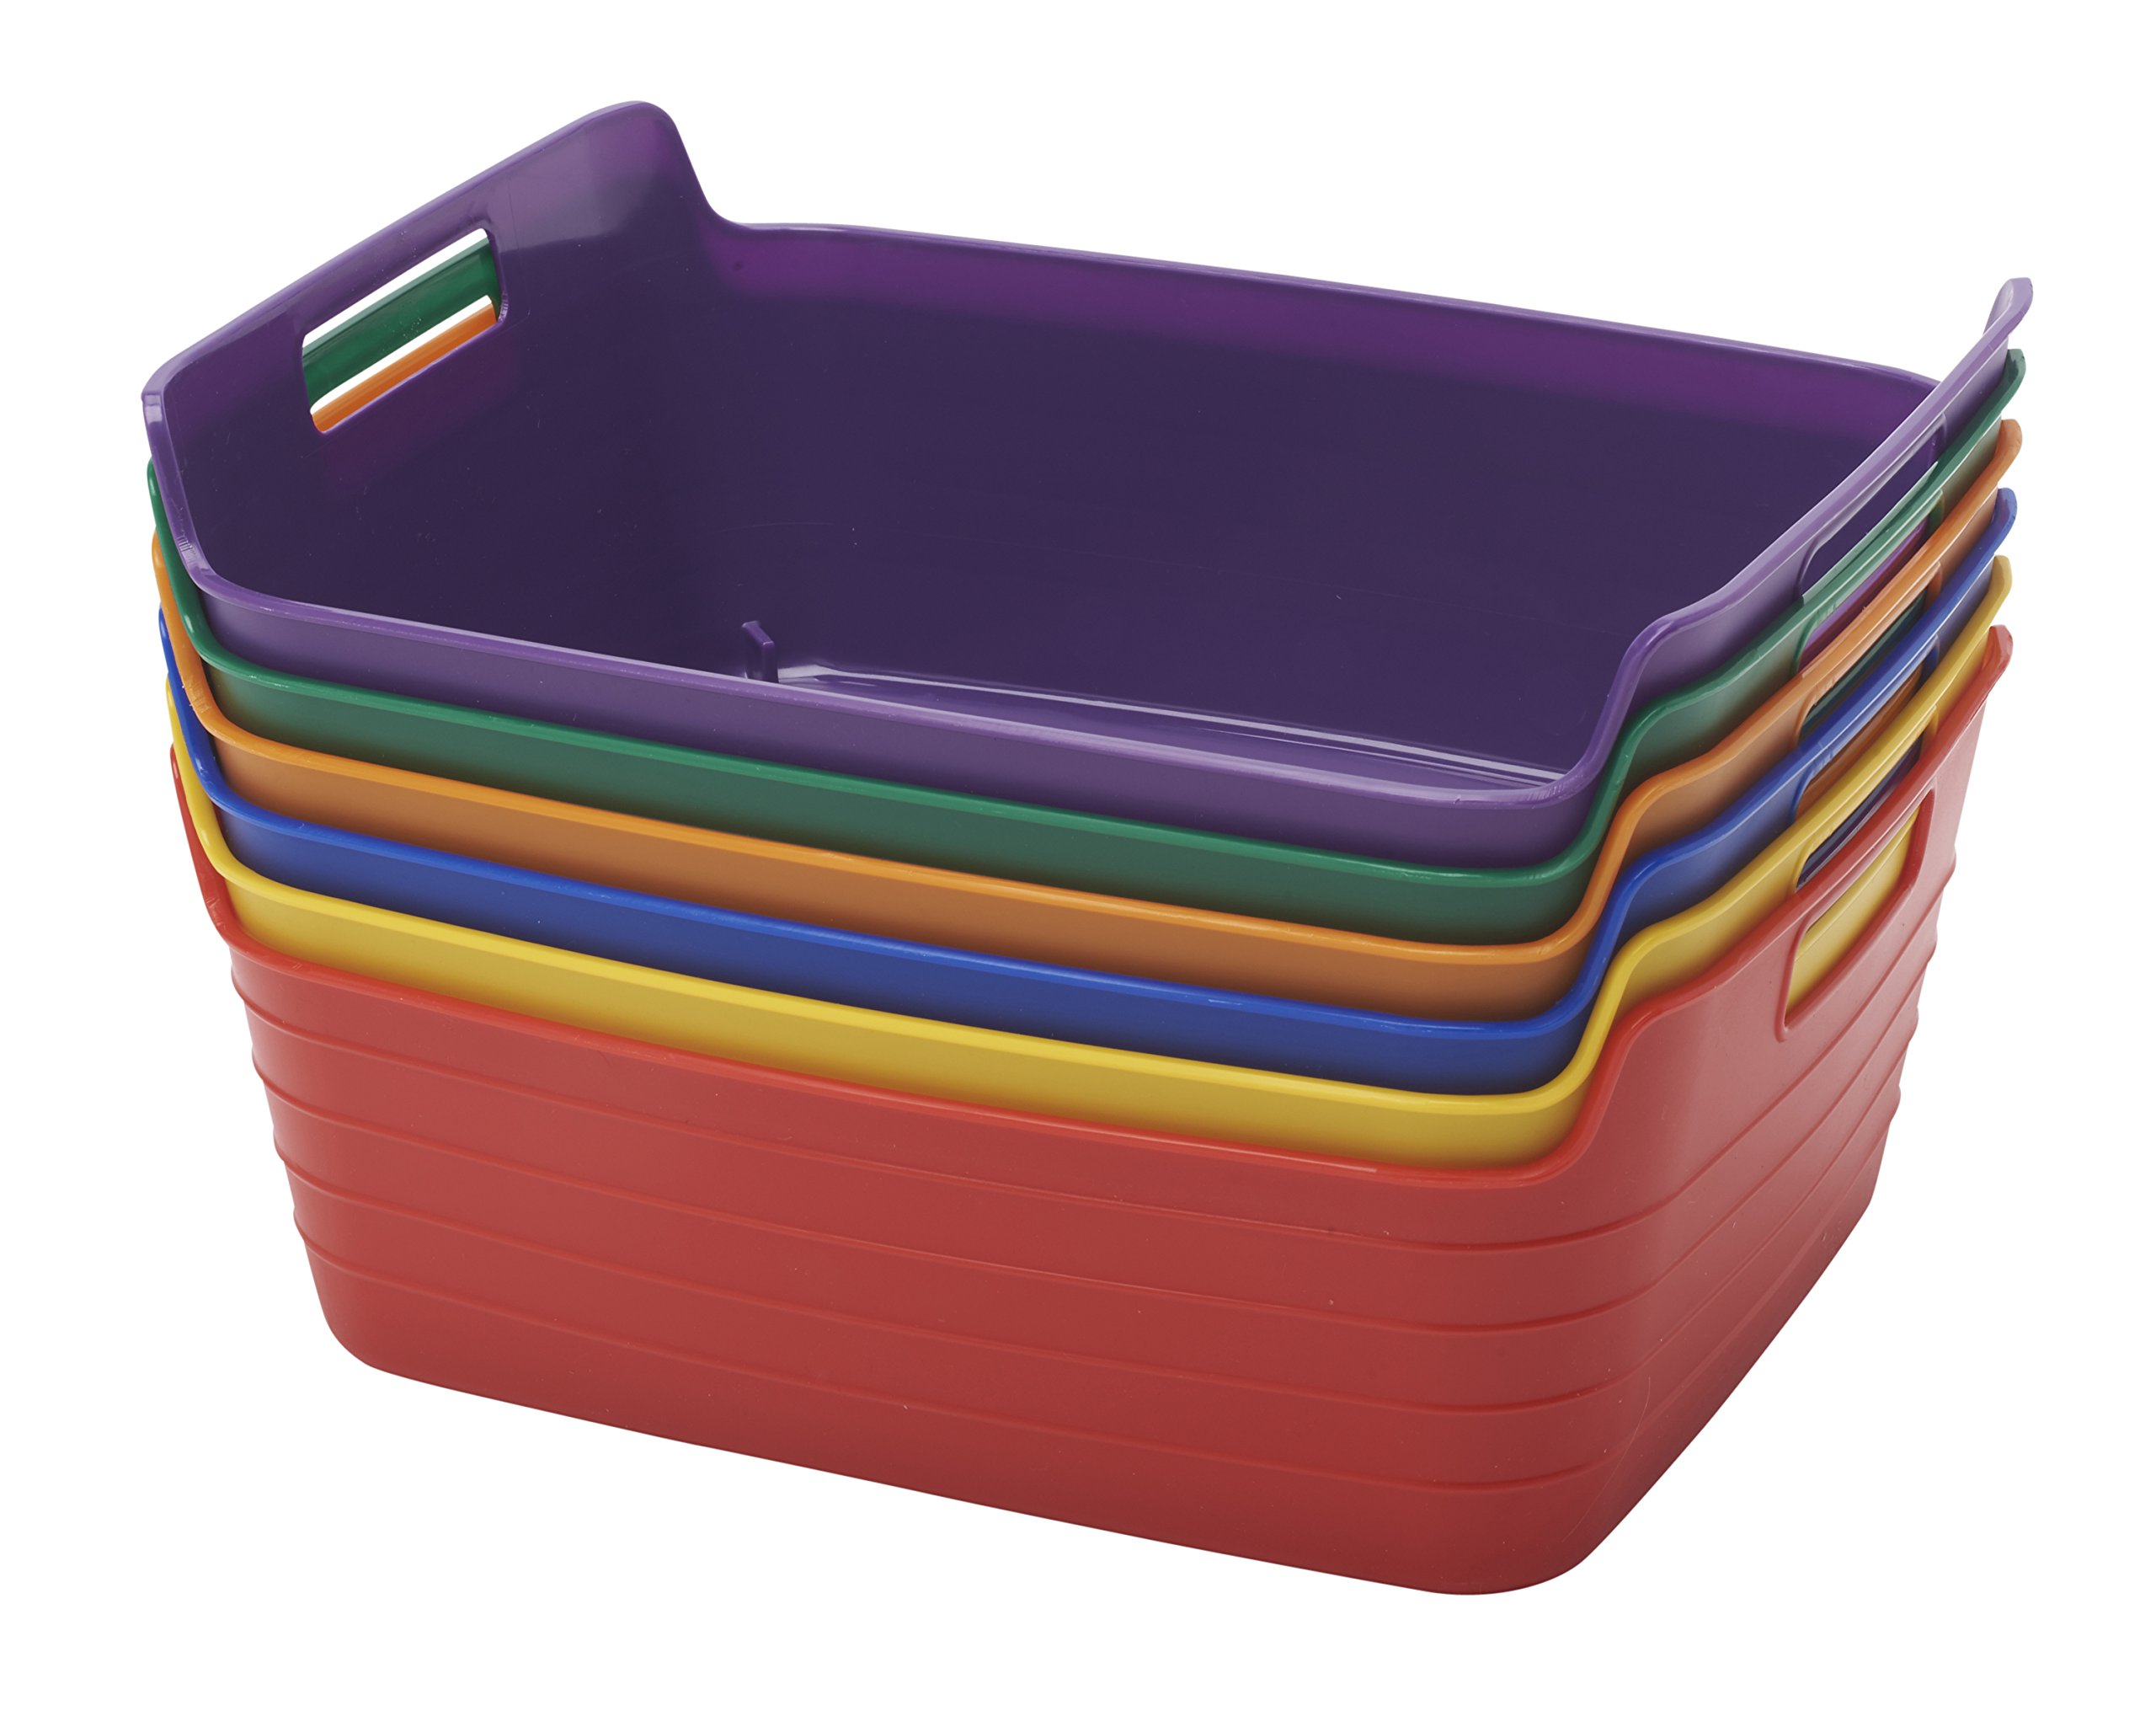 ECR4Kids Assorted Medium Bendi-Bins with Handles, Stackable Plastic Storage Bins for Toys and More, Assorted Colors (6-Pack)